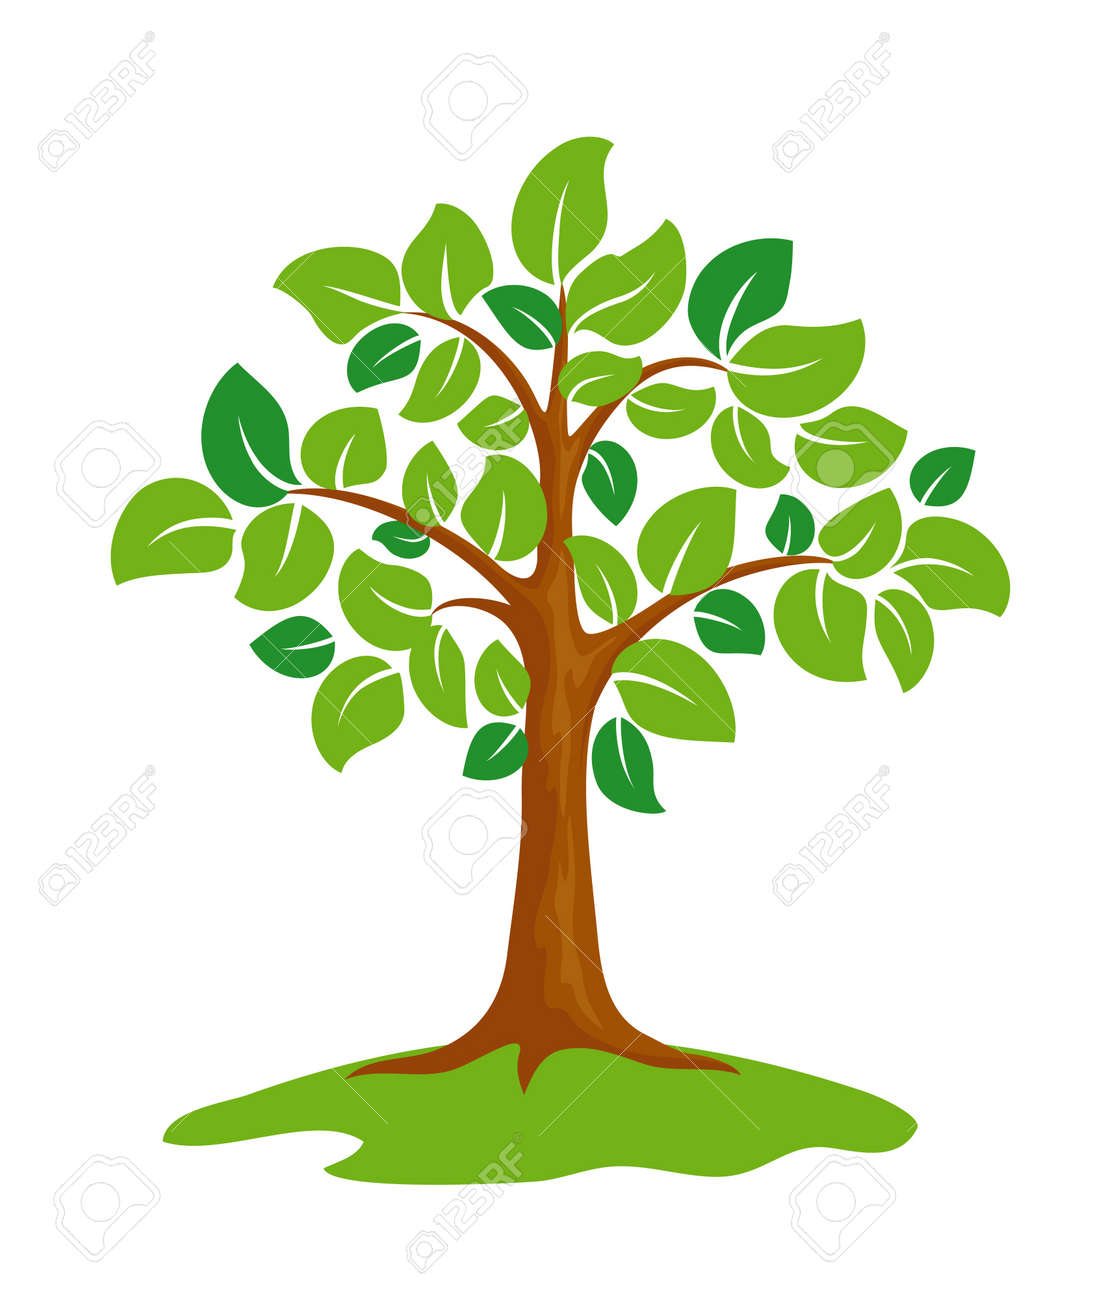 Stylized green tree. Stock Vector - 10928393